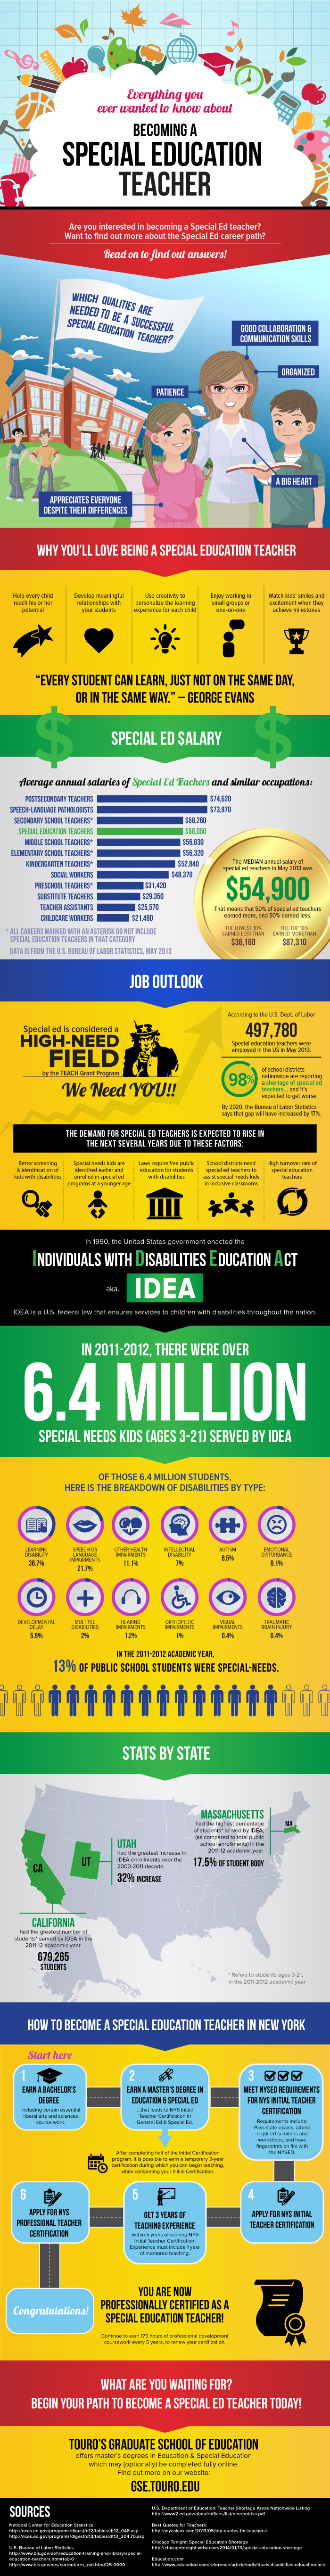 Special Education Teacher Infographic